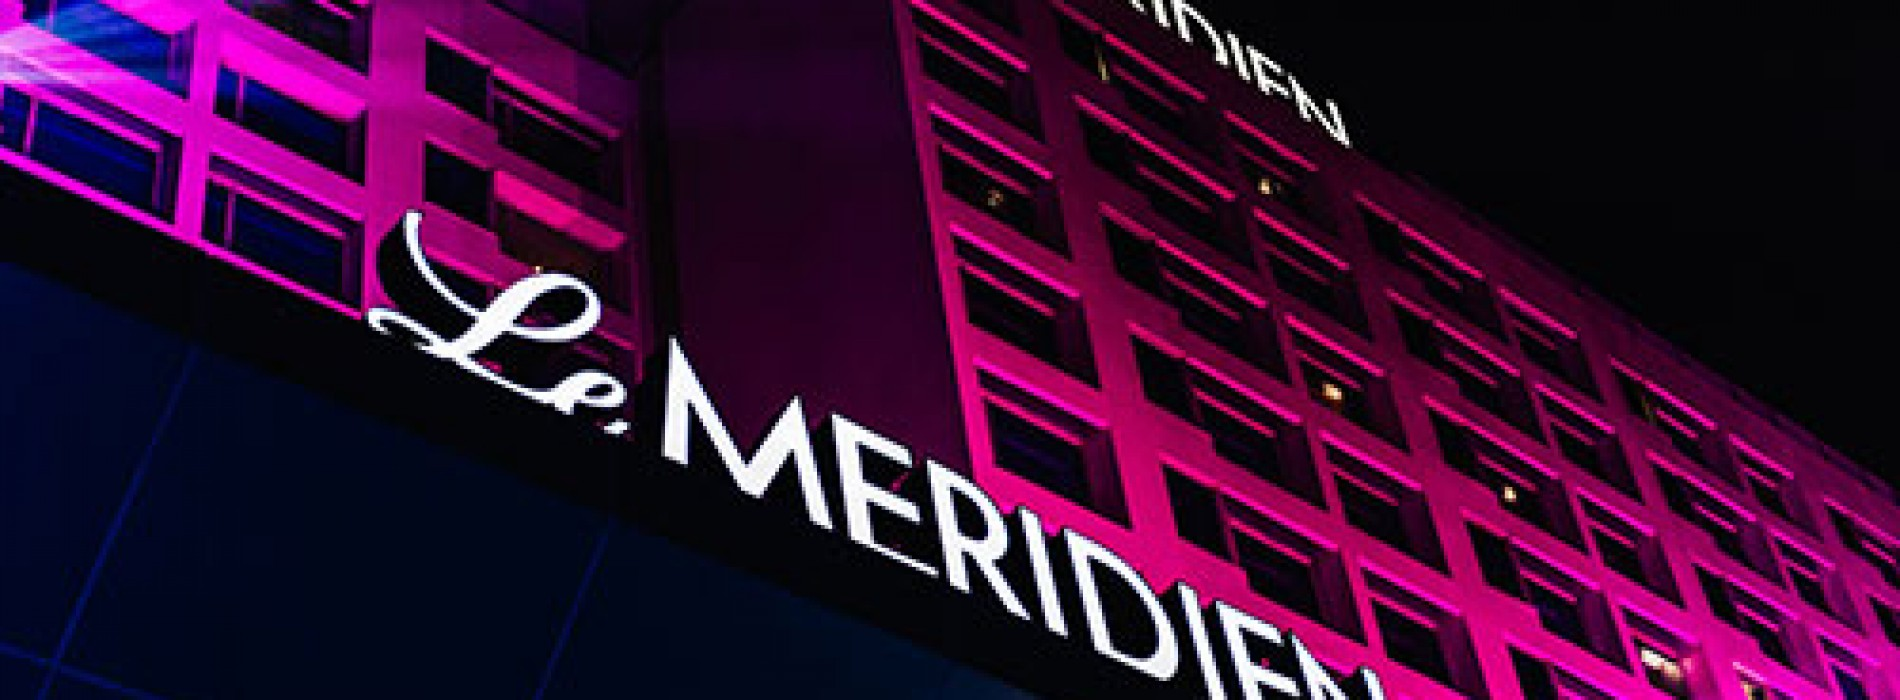 Le Meridien brings inspired discovery to the bustling Millenium City of Gurgaon